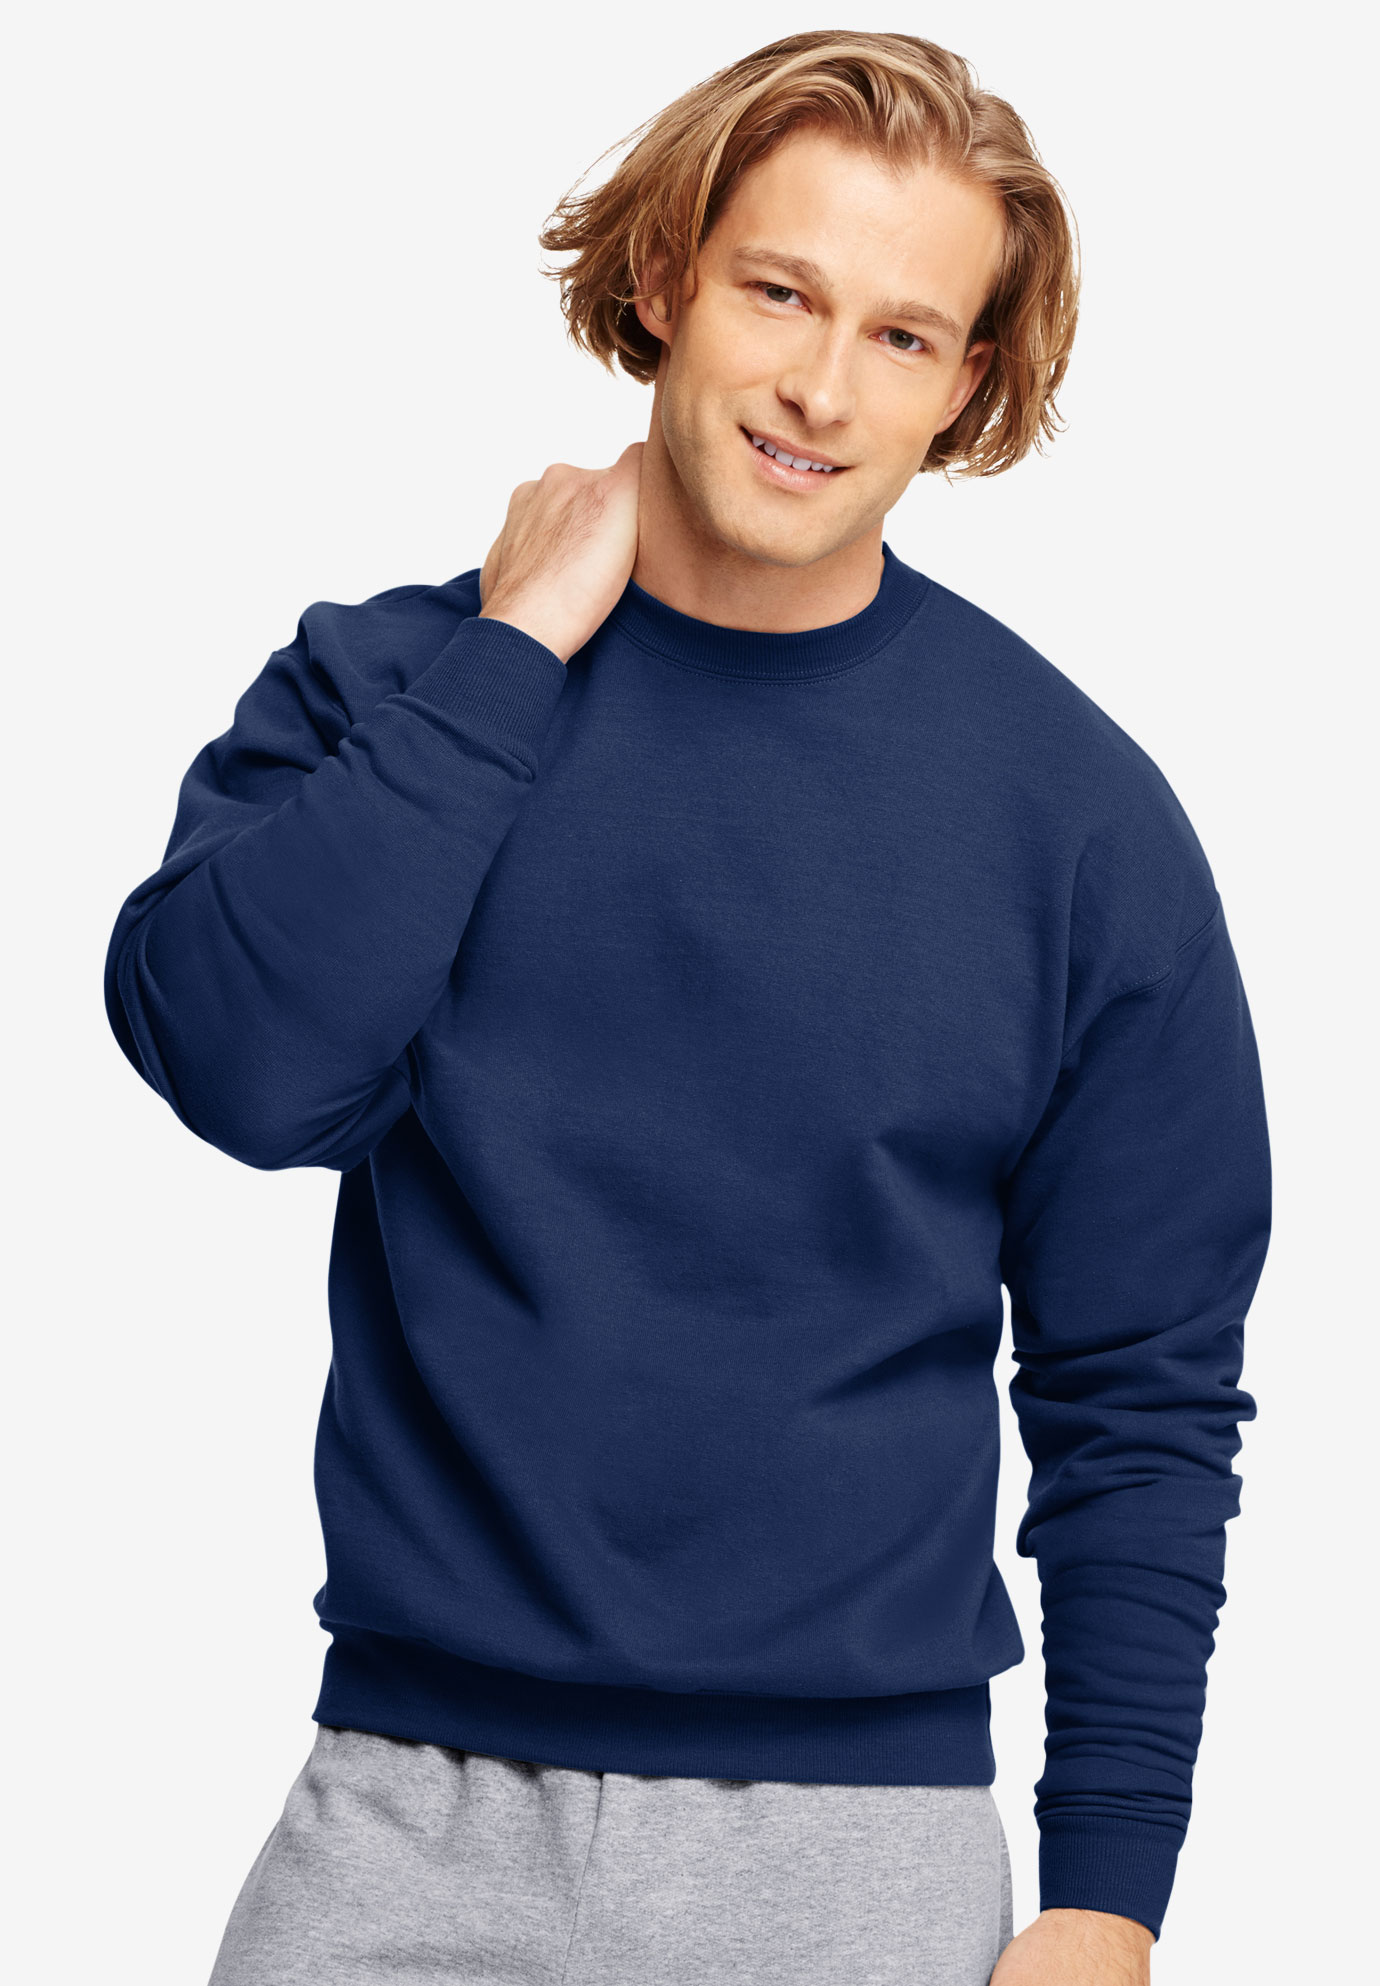 bd3d1f68 Hanes® ComfortBlend® EcoSmart® Crew Sweatshirt| Big and Tall ...